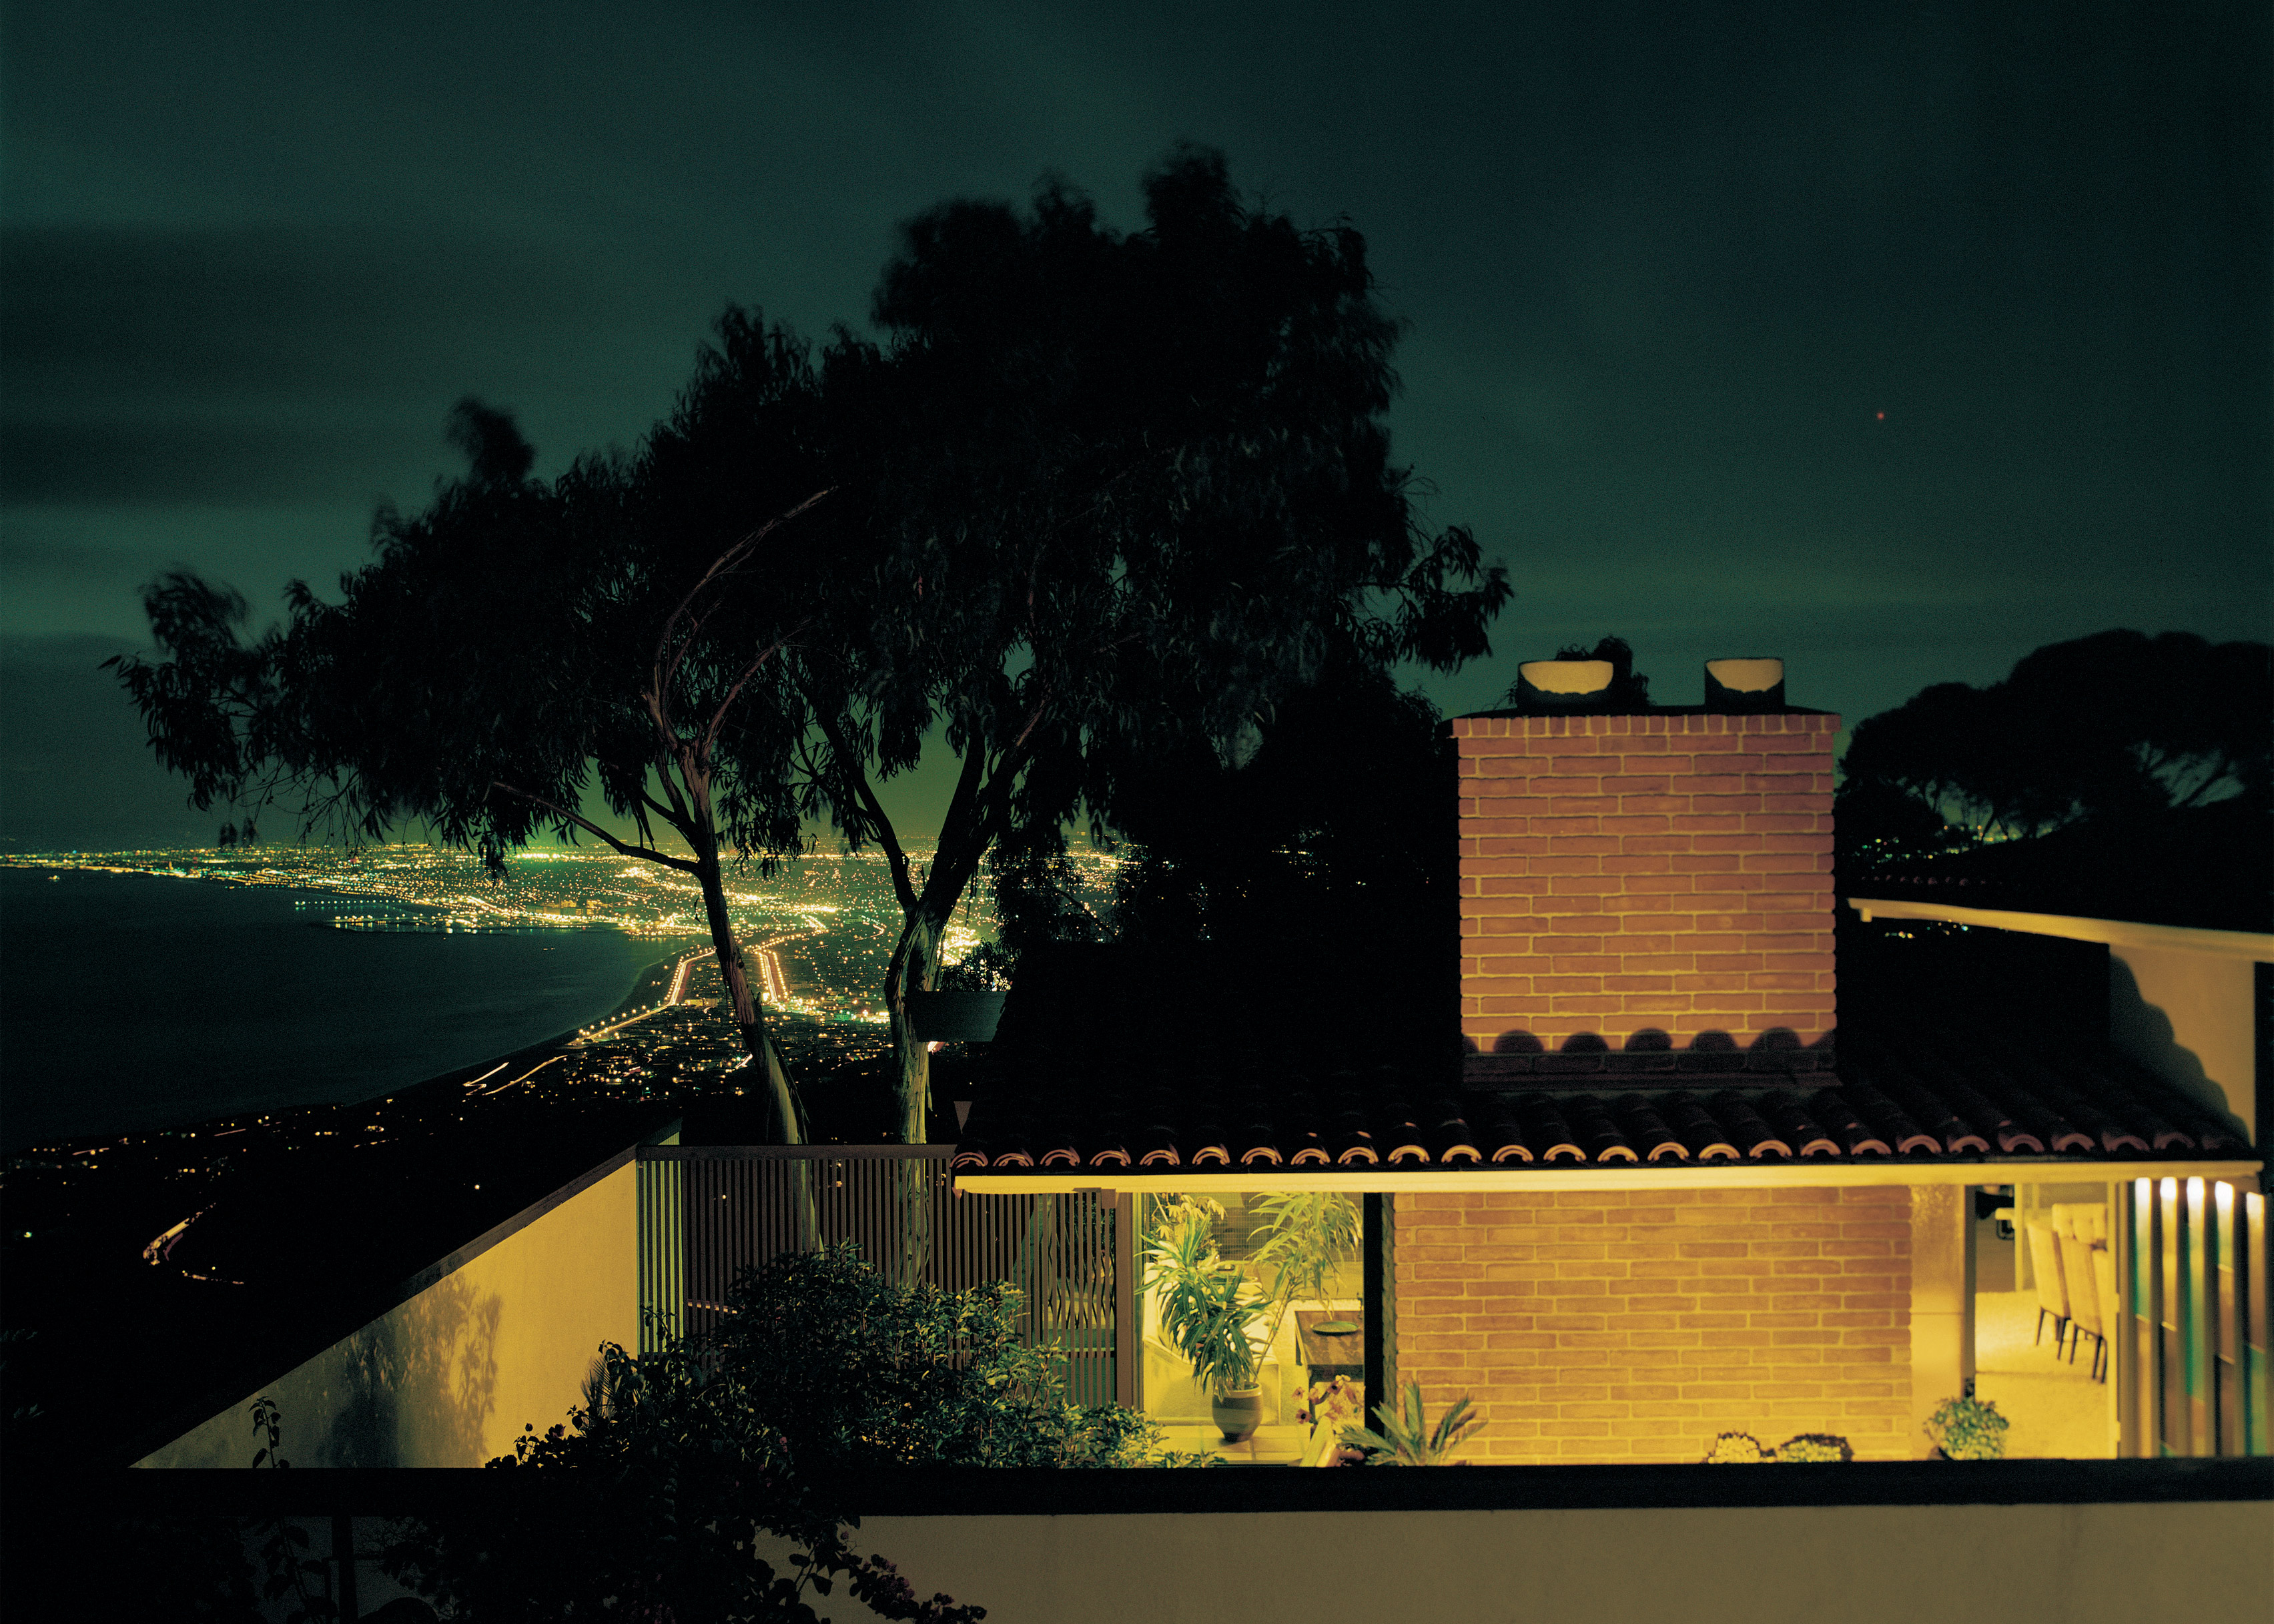 Greenberg Residence by Buff & Hensman, Palos Verdes, California, photographed in 1966